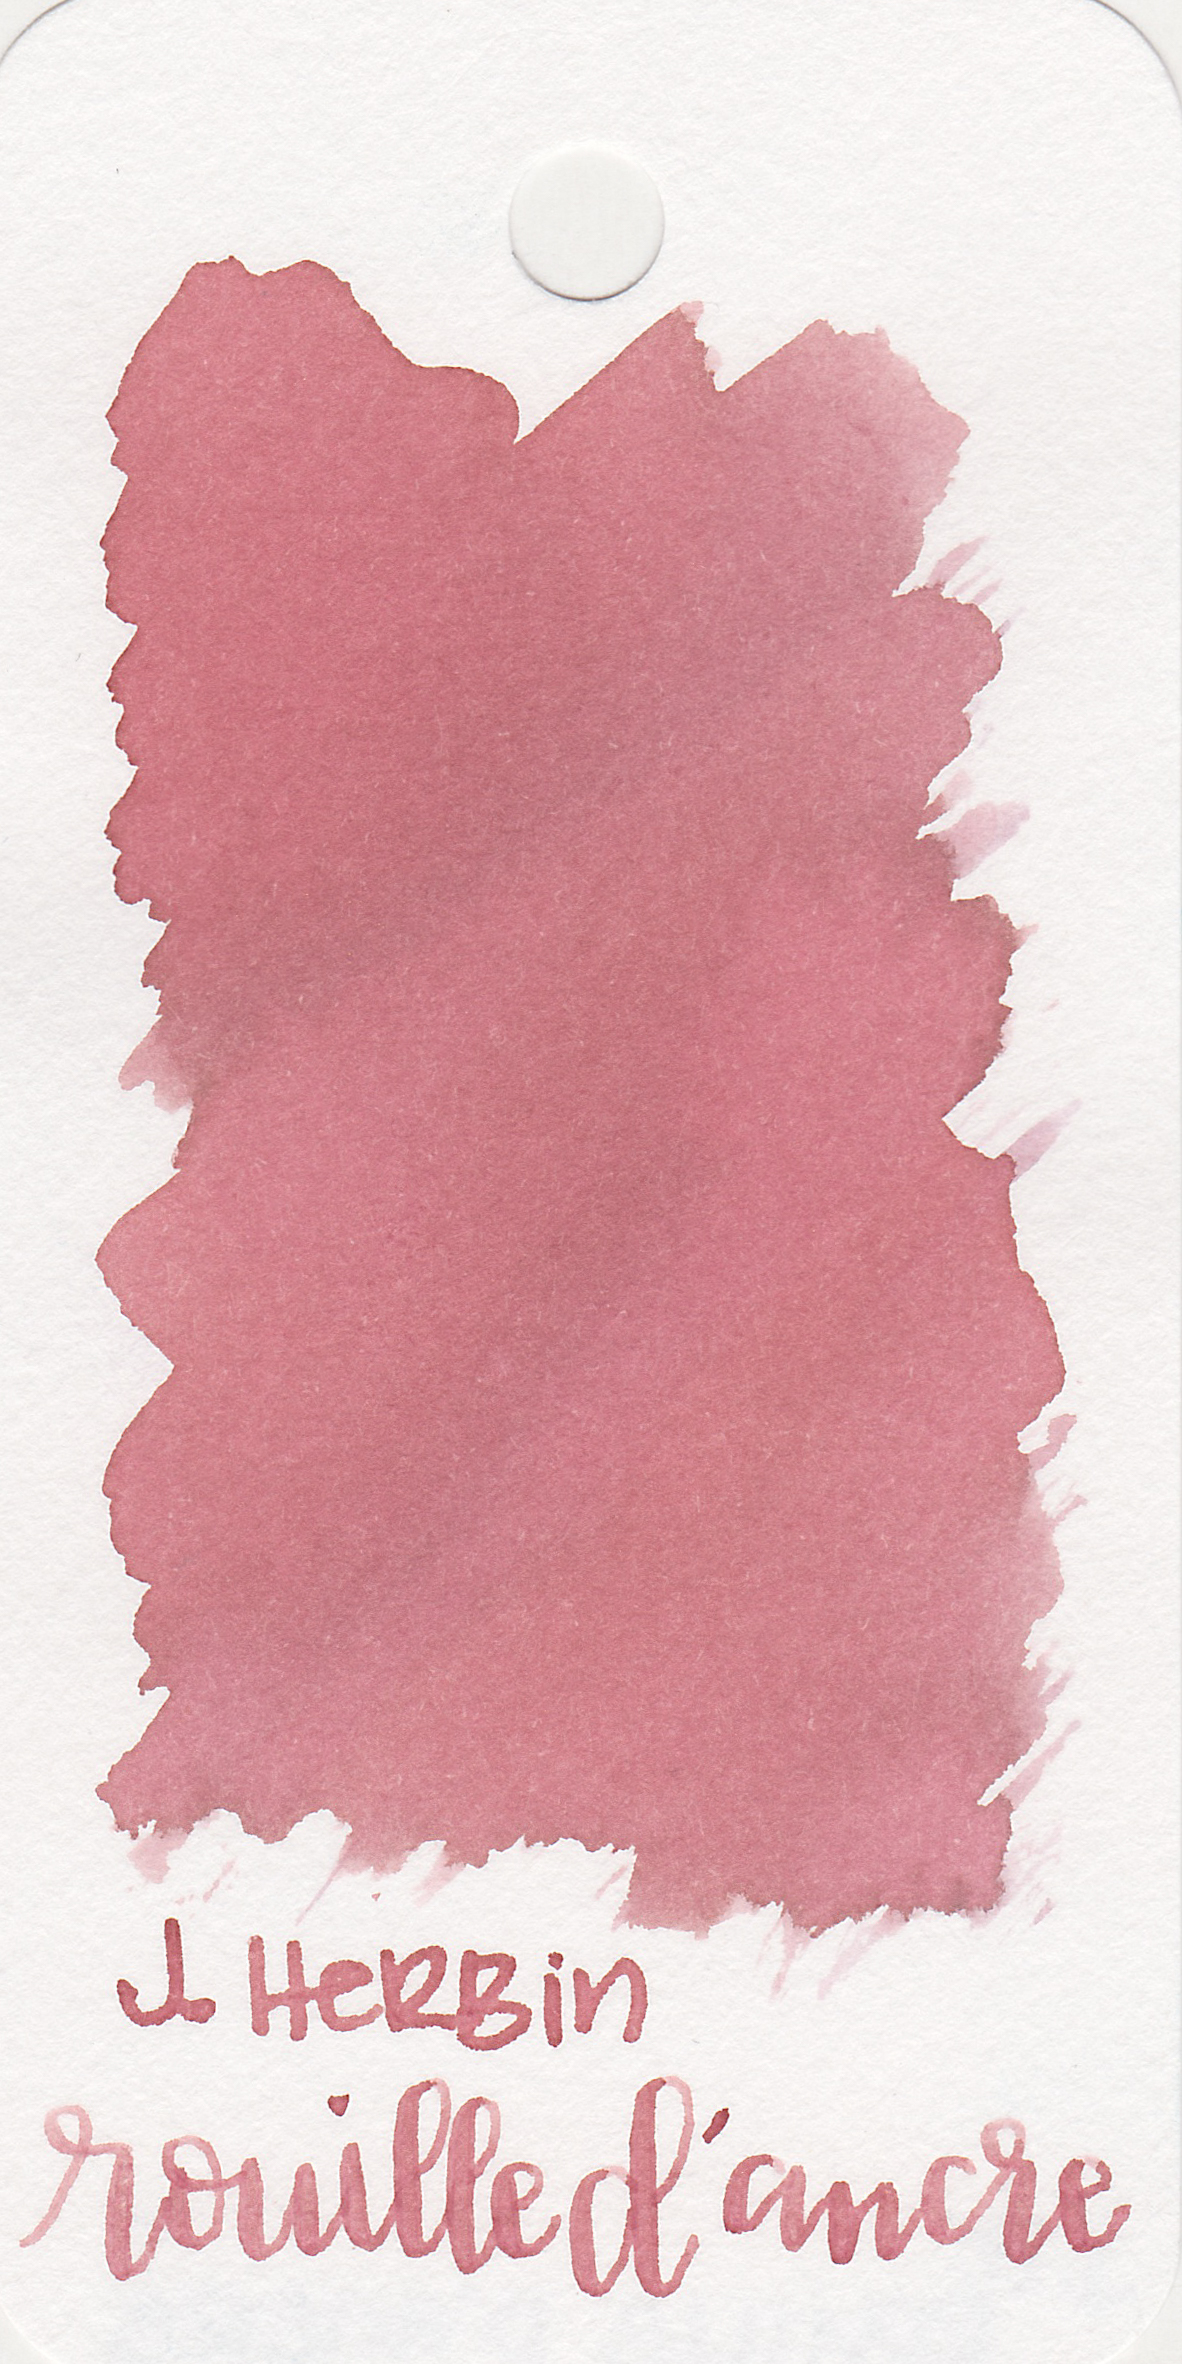 The color: - Rouille D'Ancre is a light, peachy pink. It looks more peach when wet, and more pink when dry. It's a nice light, spring pink.